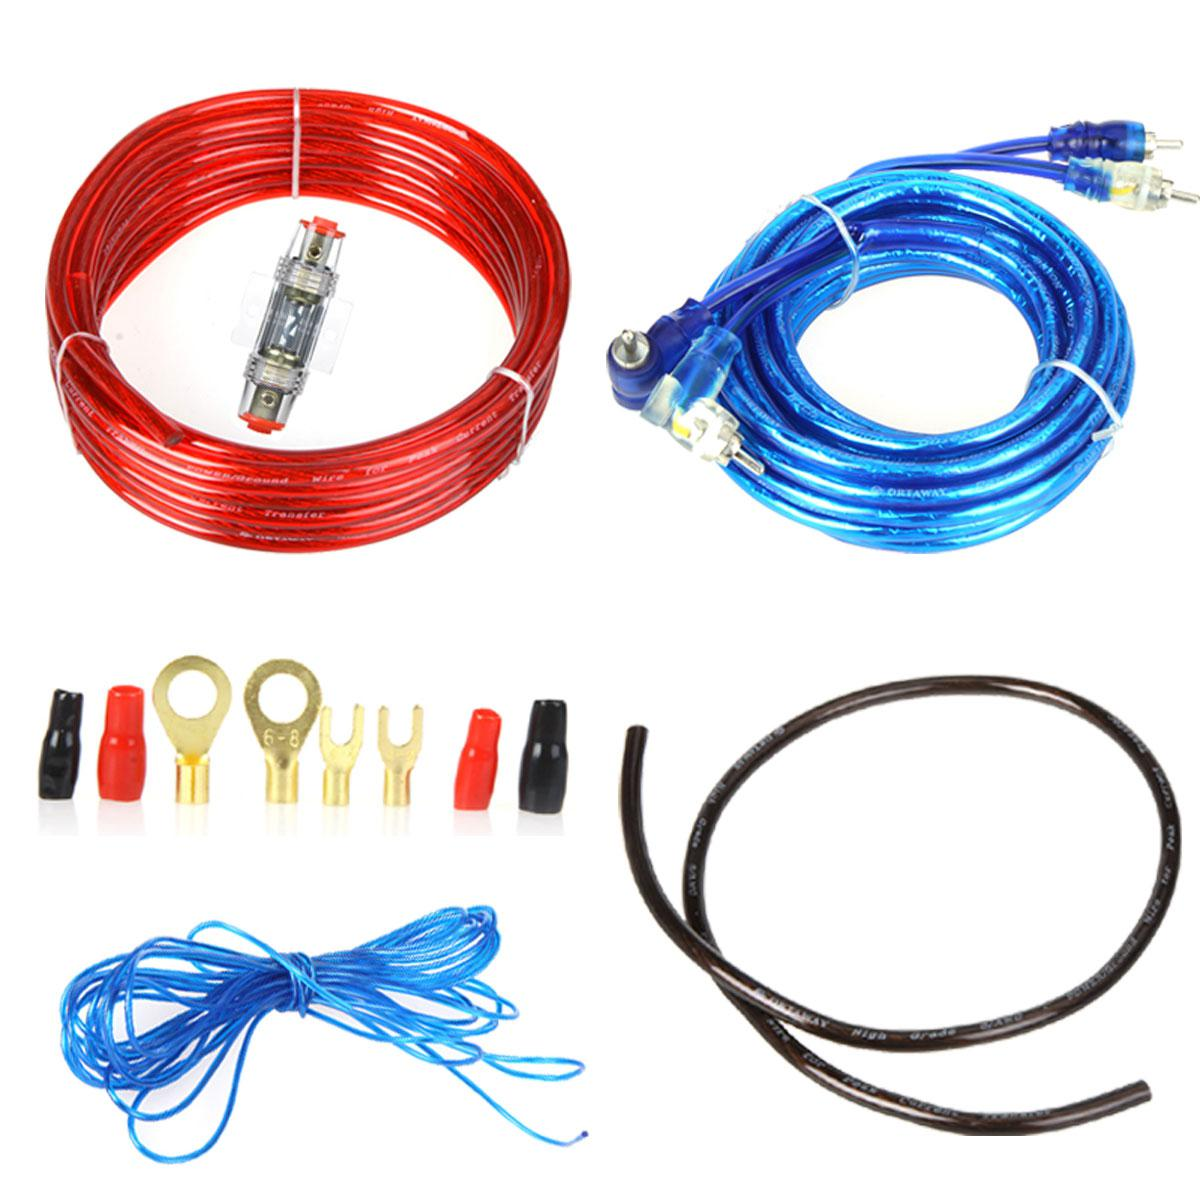 best quality 1500w car audio wire wiring amplifier subwoofer best quality 1500w car audio wire wiring amplifier subwoofer speaker installation kit 8ga power cable 60 amp fuse holder at cheap price online other